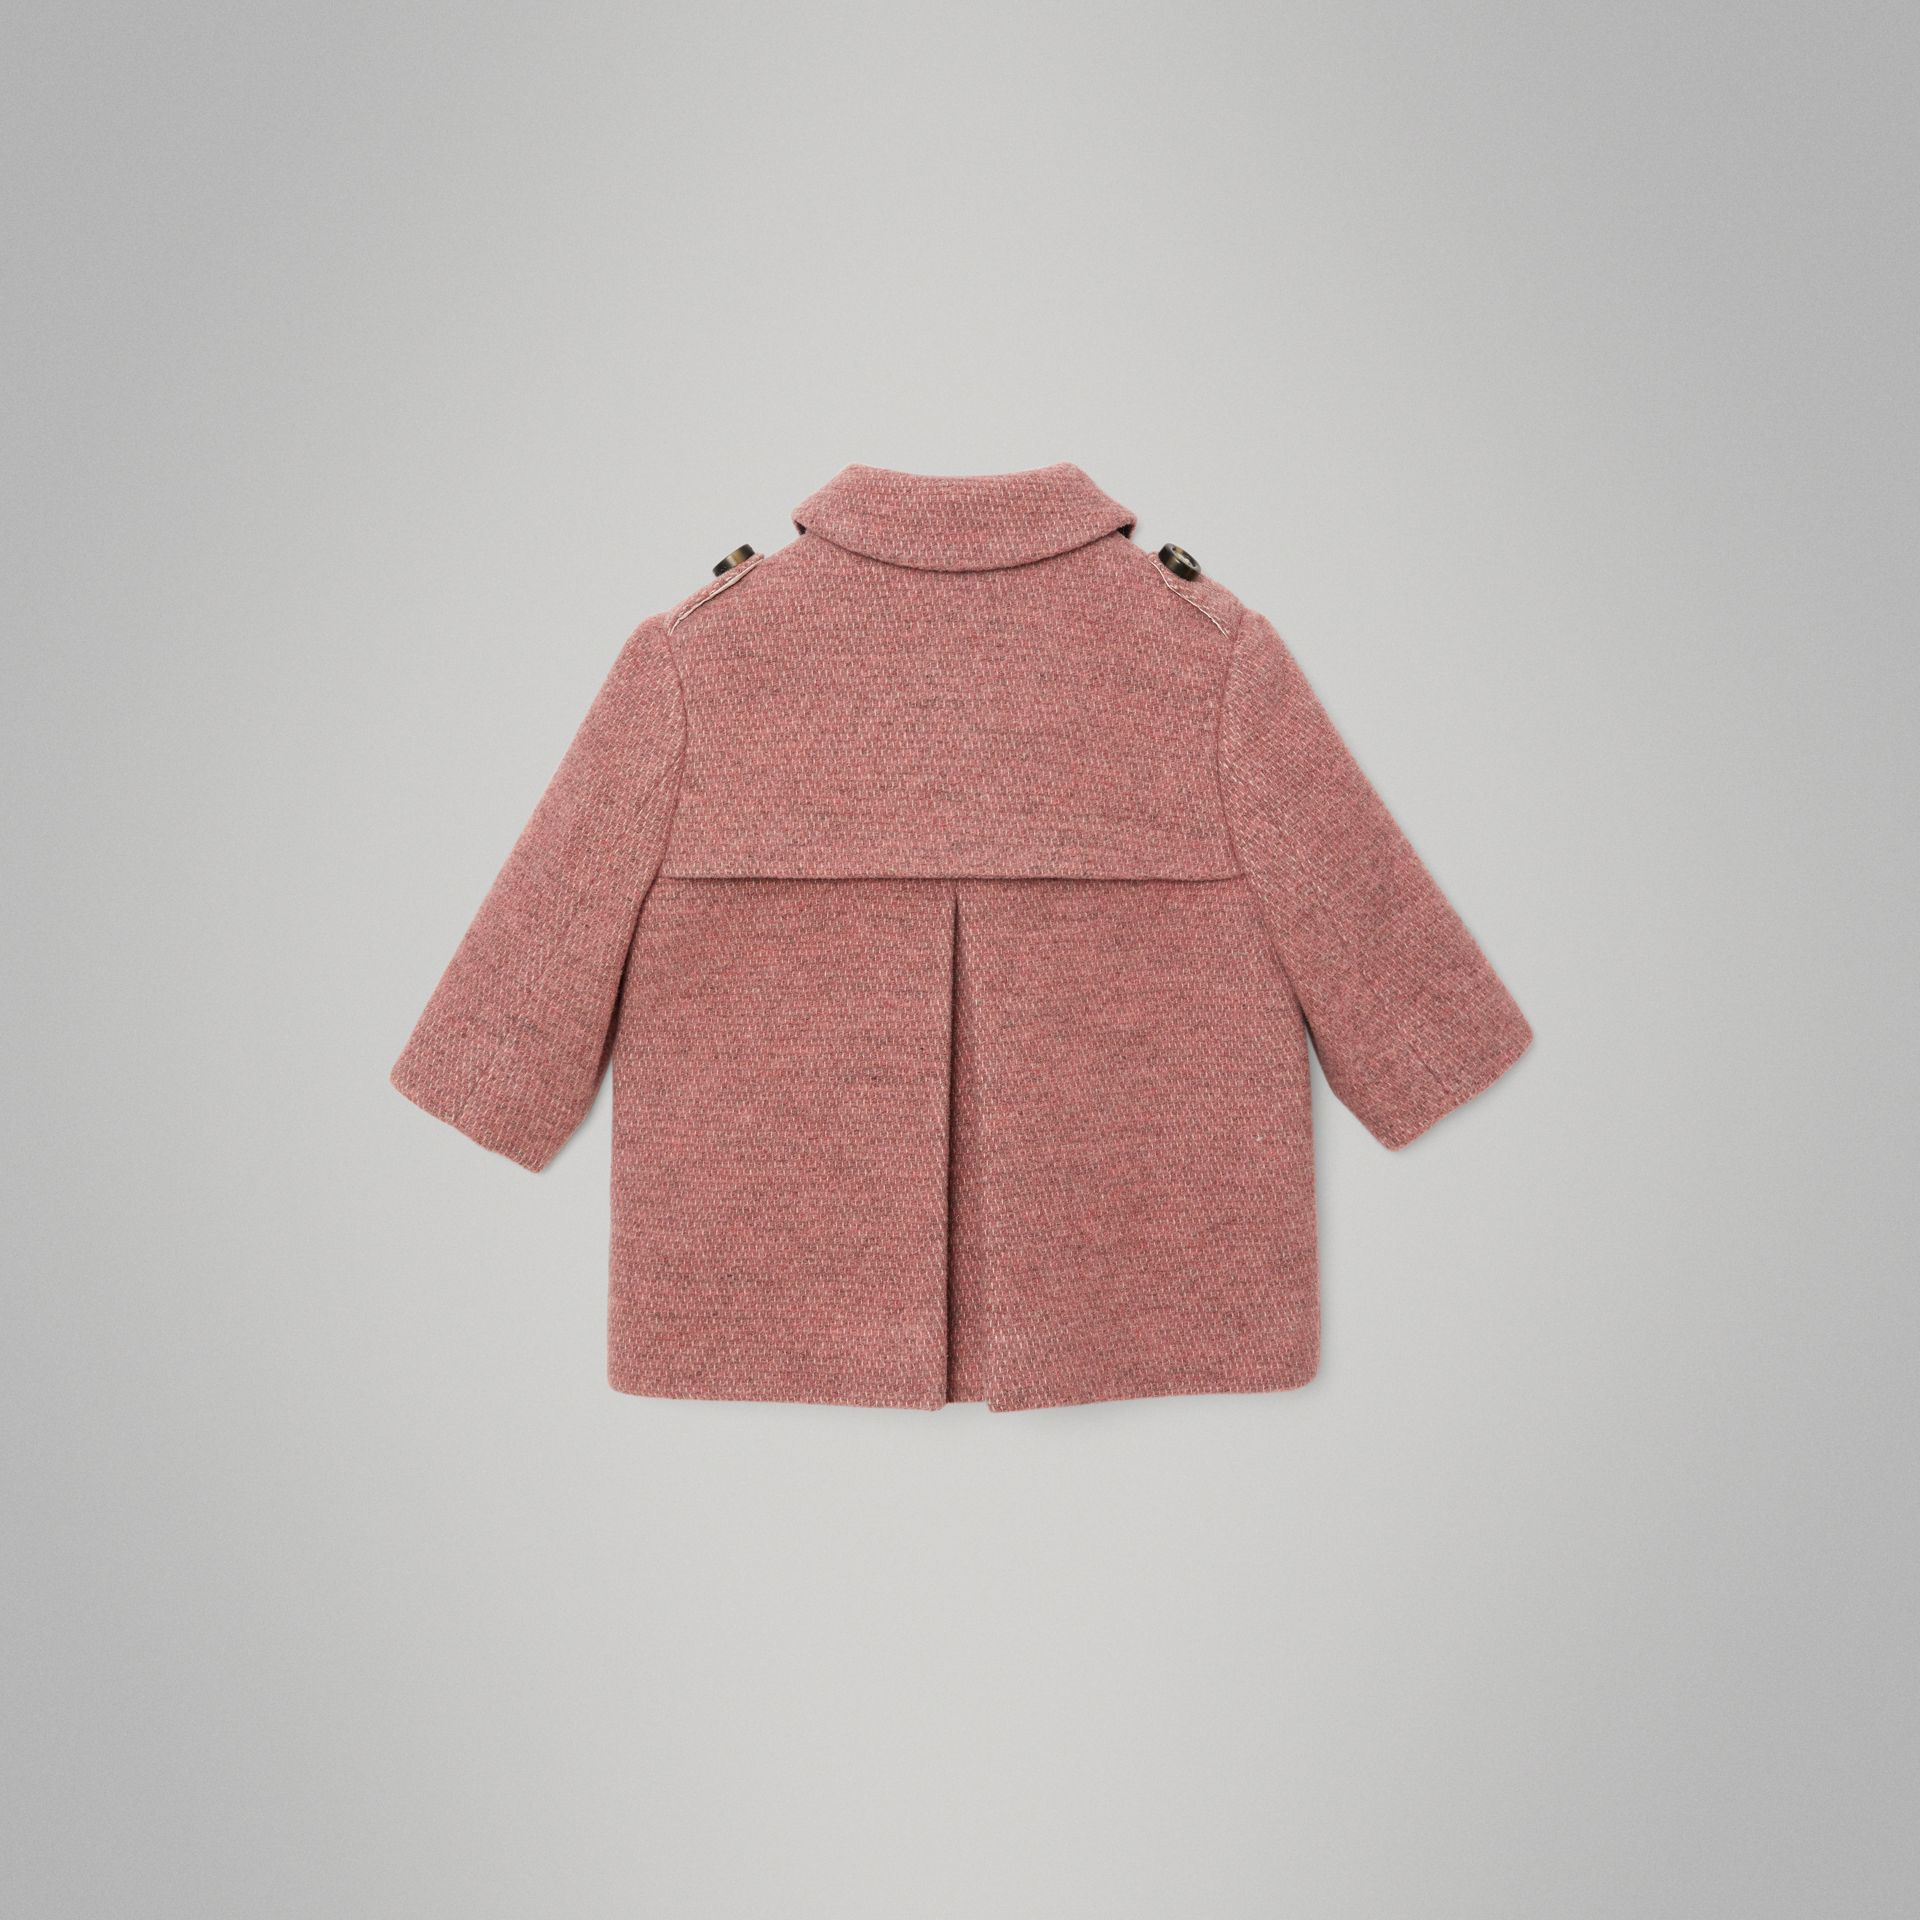 Wool Blend Pea Coat in Rose Pink Melange - Children | Burberry United Kingdom - gallery image 3